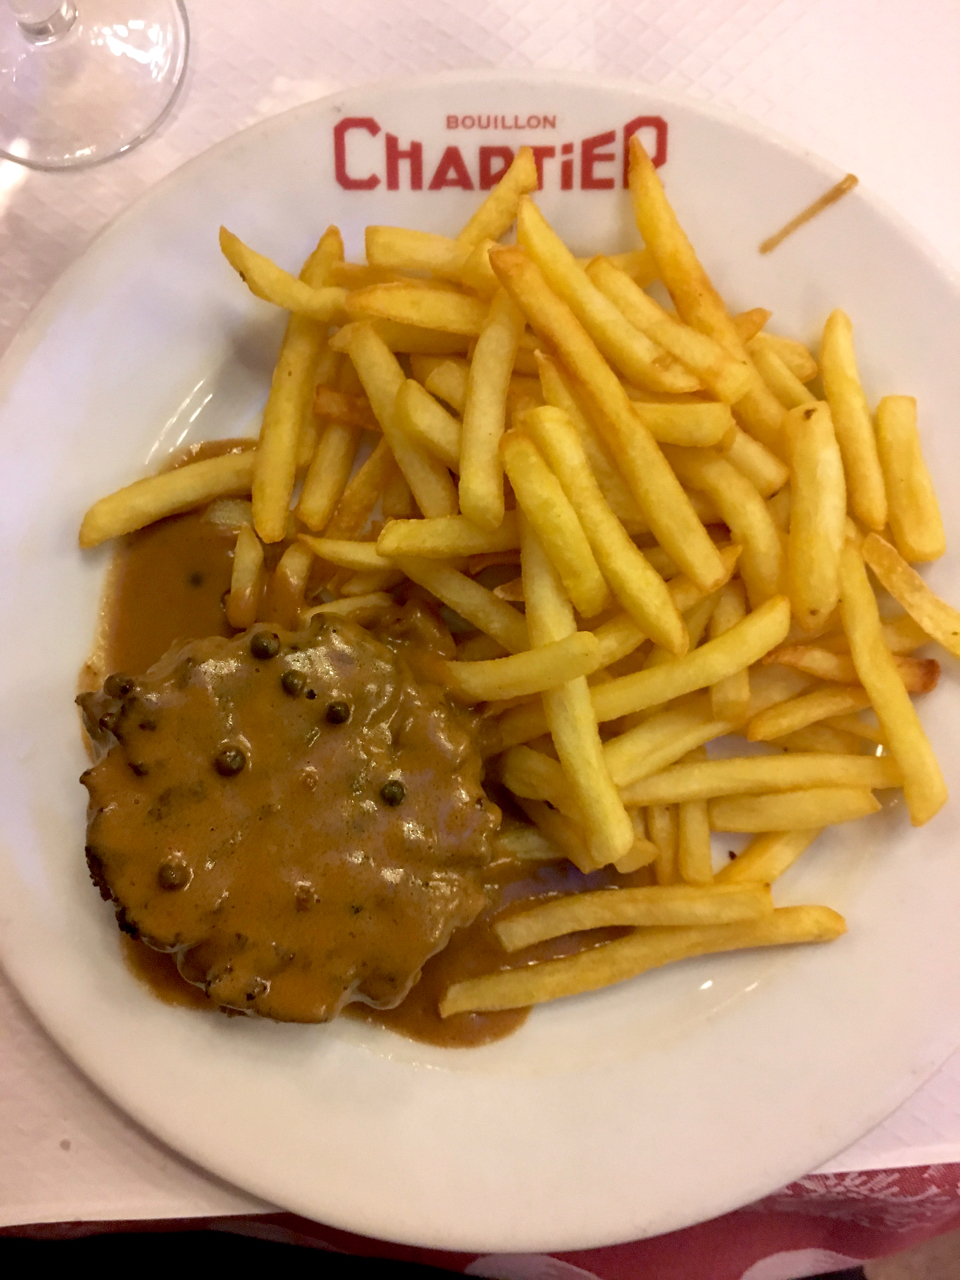 boullion chartier steak hache